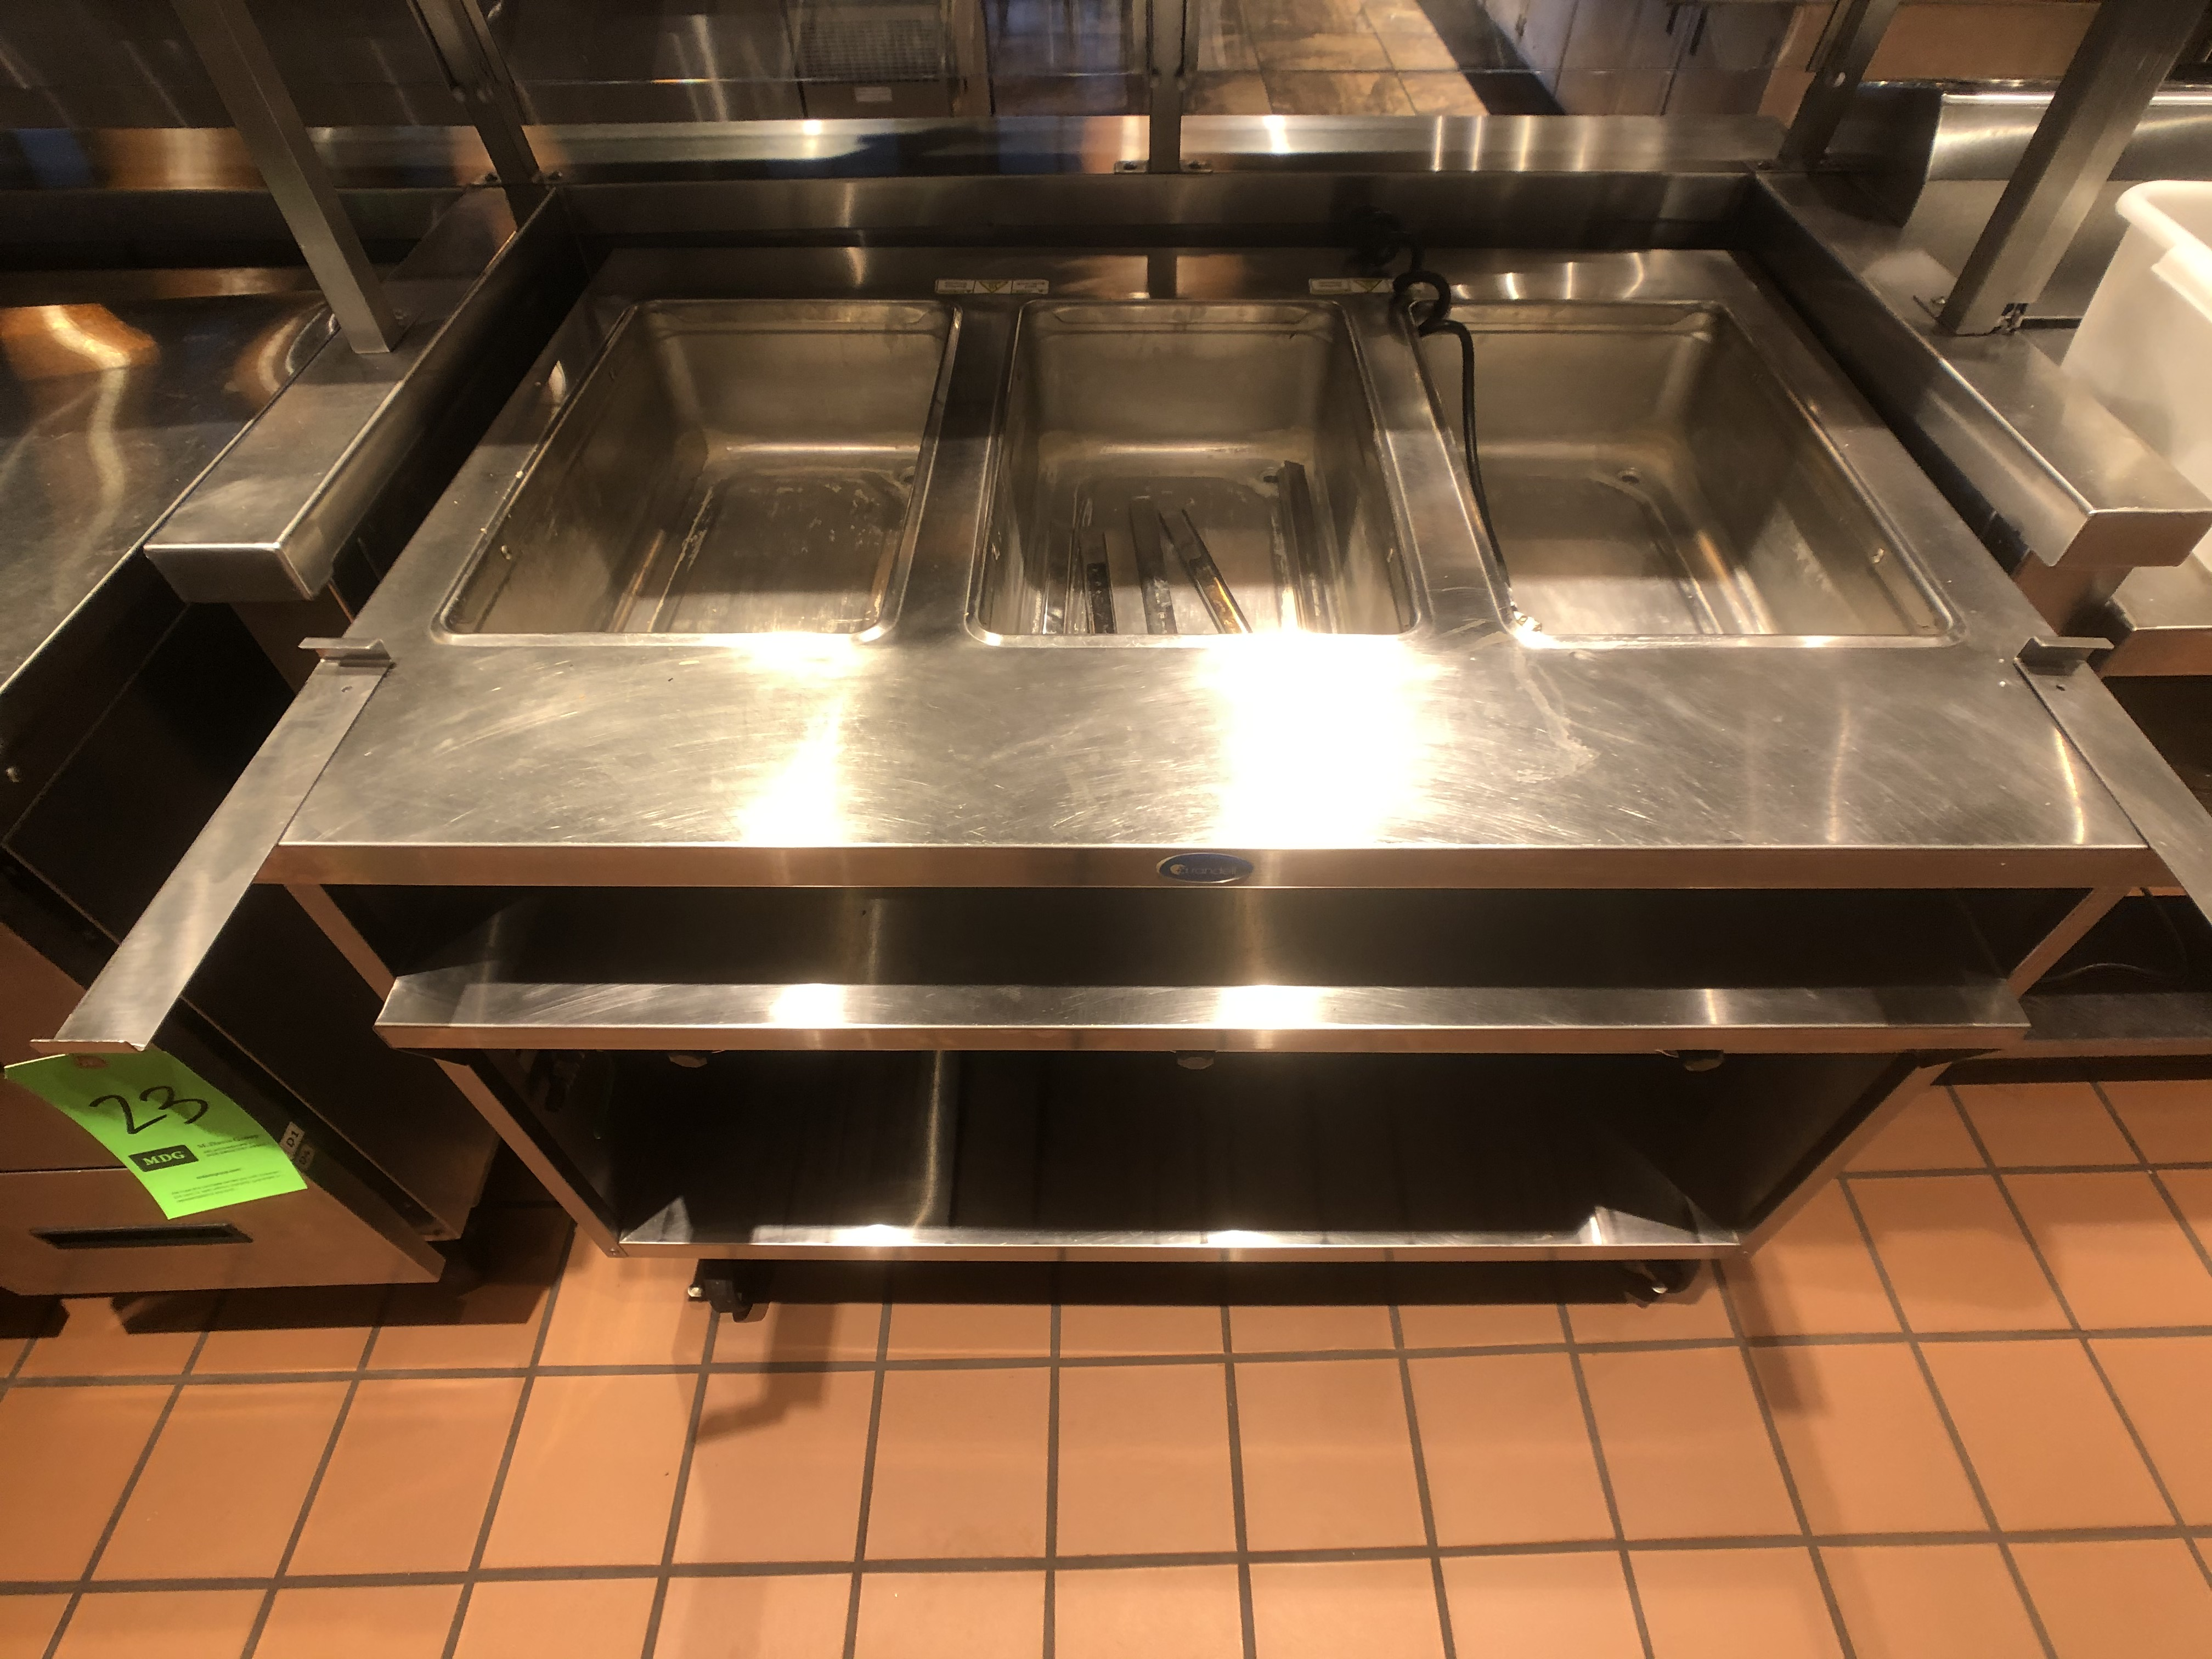 """Randell Open Base Electric Hot Food Table, Model 3613-240, S/N W1041760-1, 48"""" W x 33"""" D x 36"""" H - Image 2 of 4"""